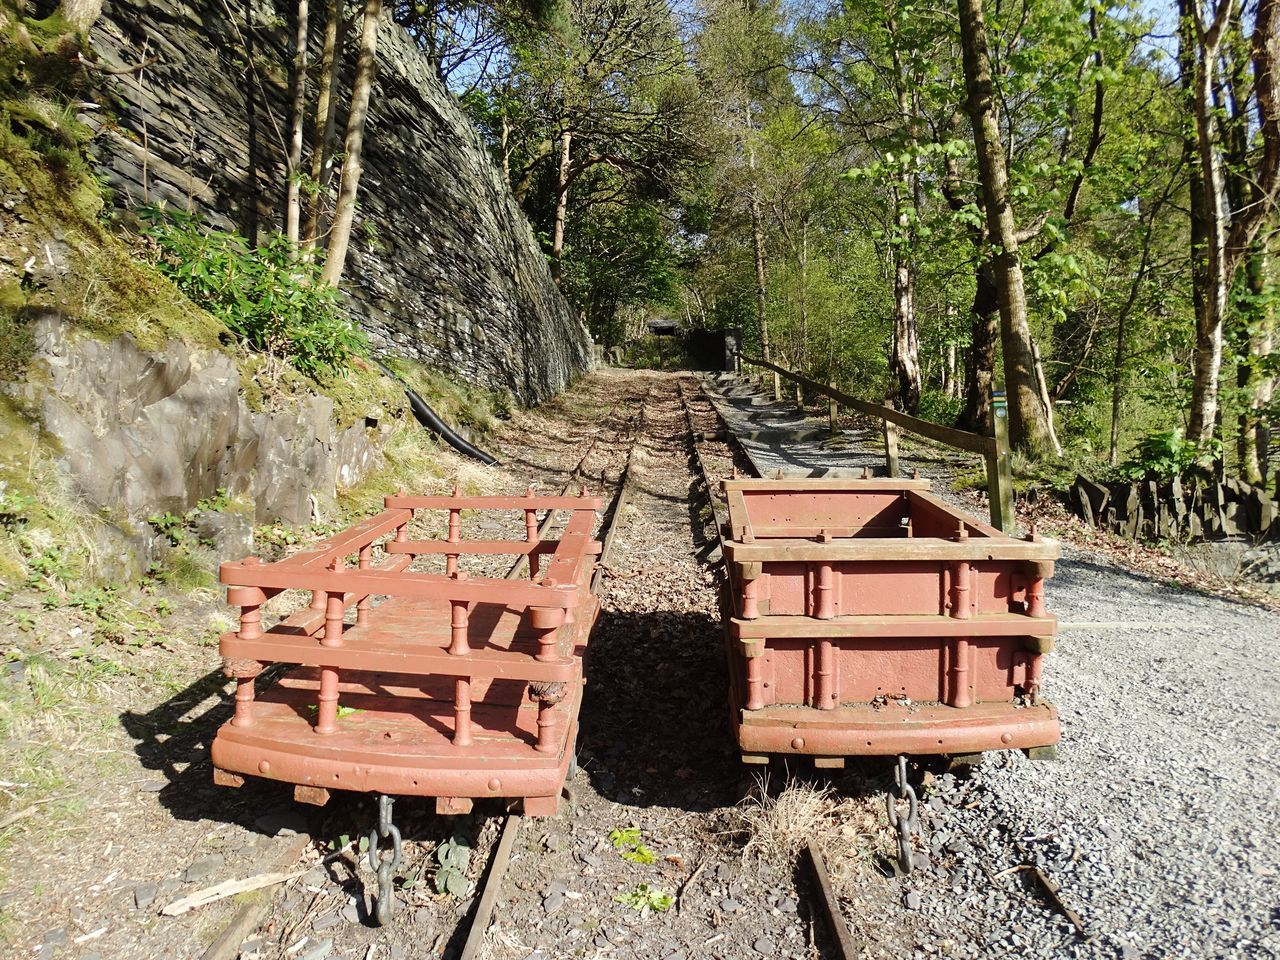 2 mining trucks on tracks. No People Mining Truck Trucks Cart Mine Cart Mine Truck Track Tracks Railroad Track Railway Track Rail Uphill Hill Steep Mining Industry Mining Heritage Old Abandoned Day Nature